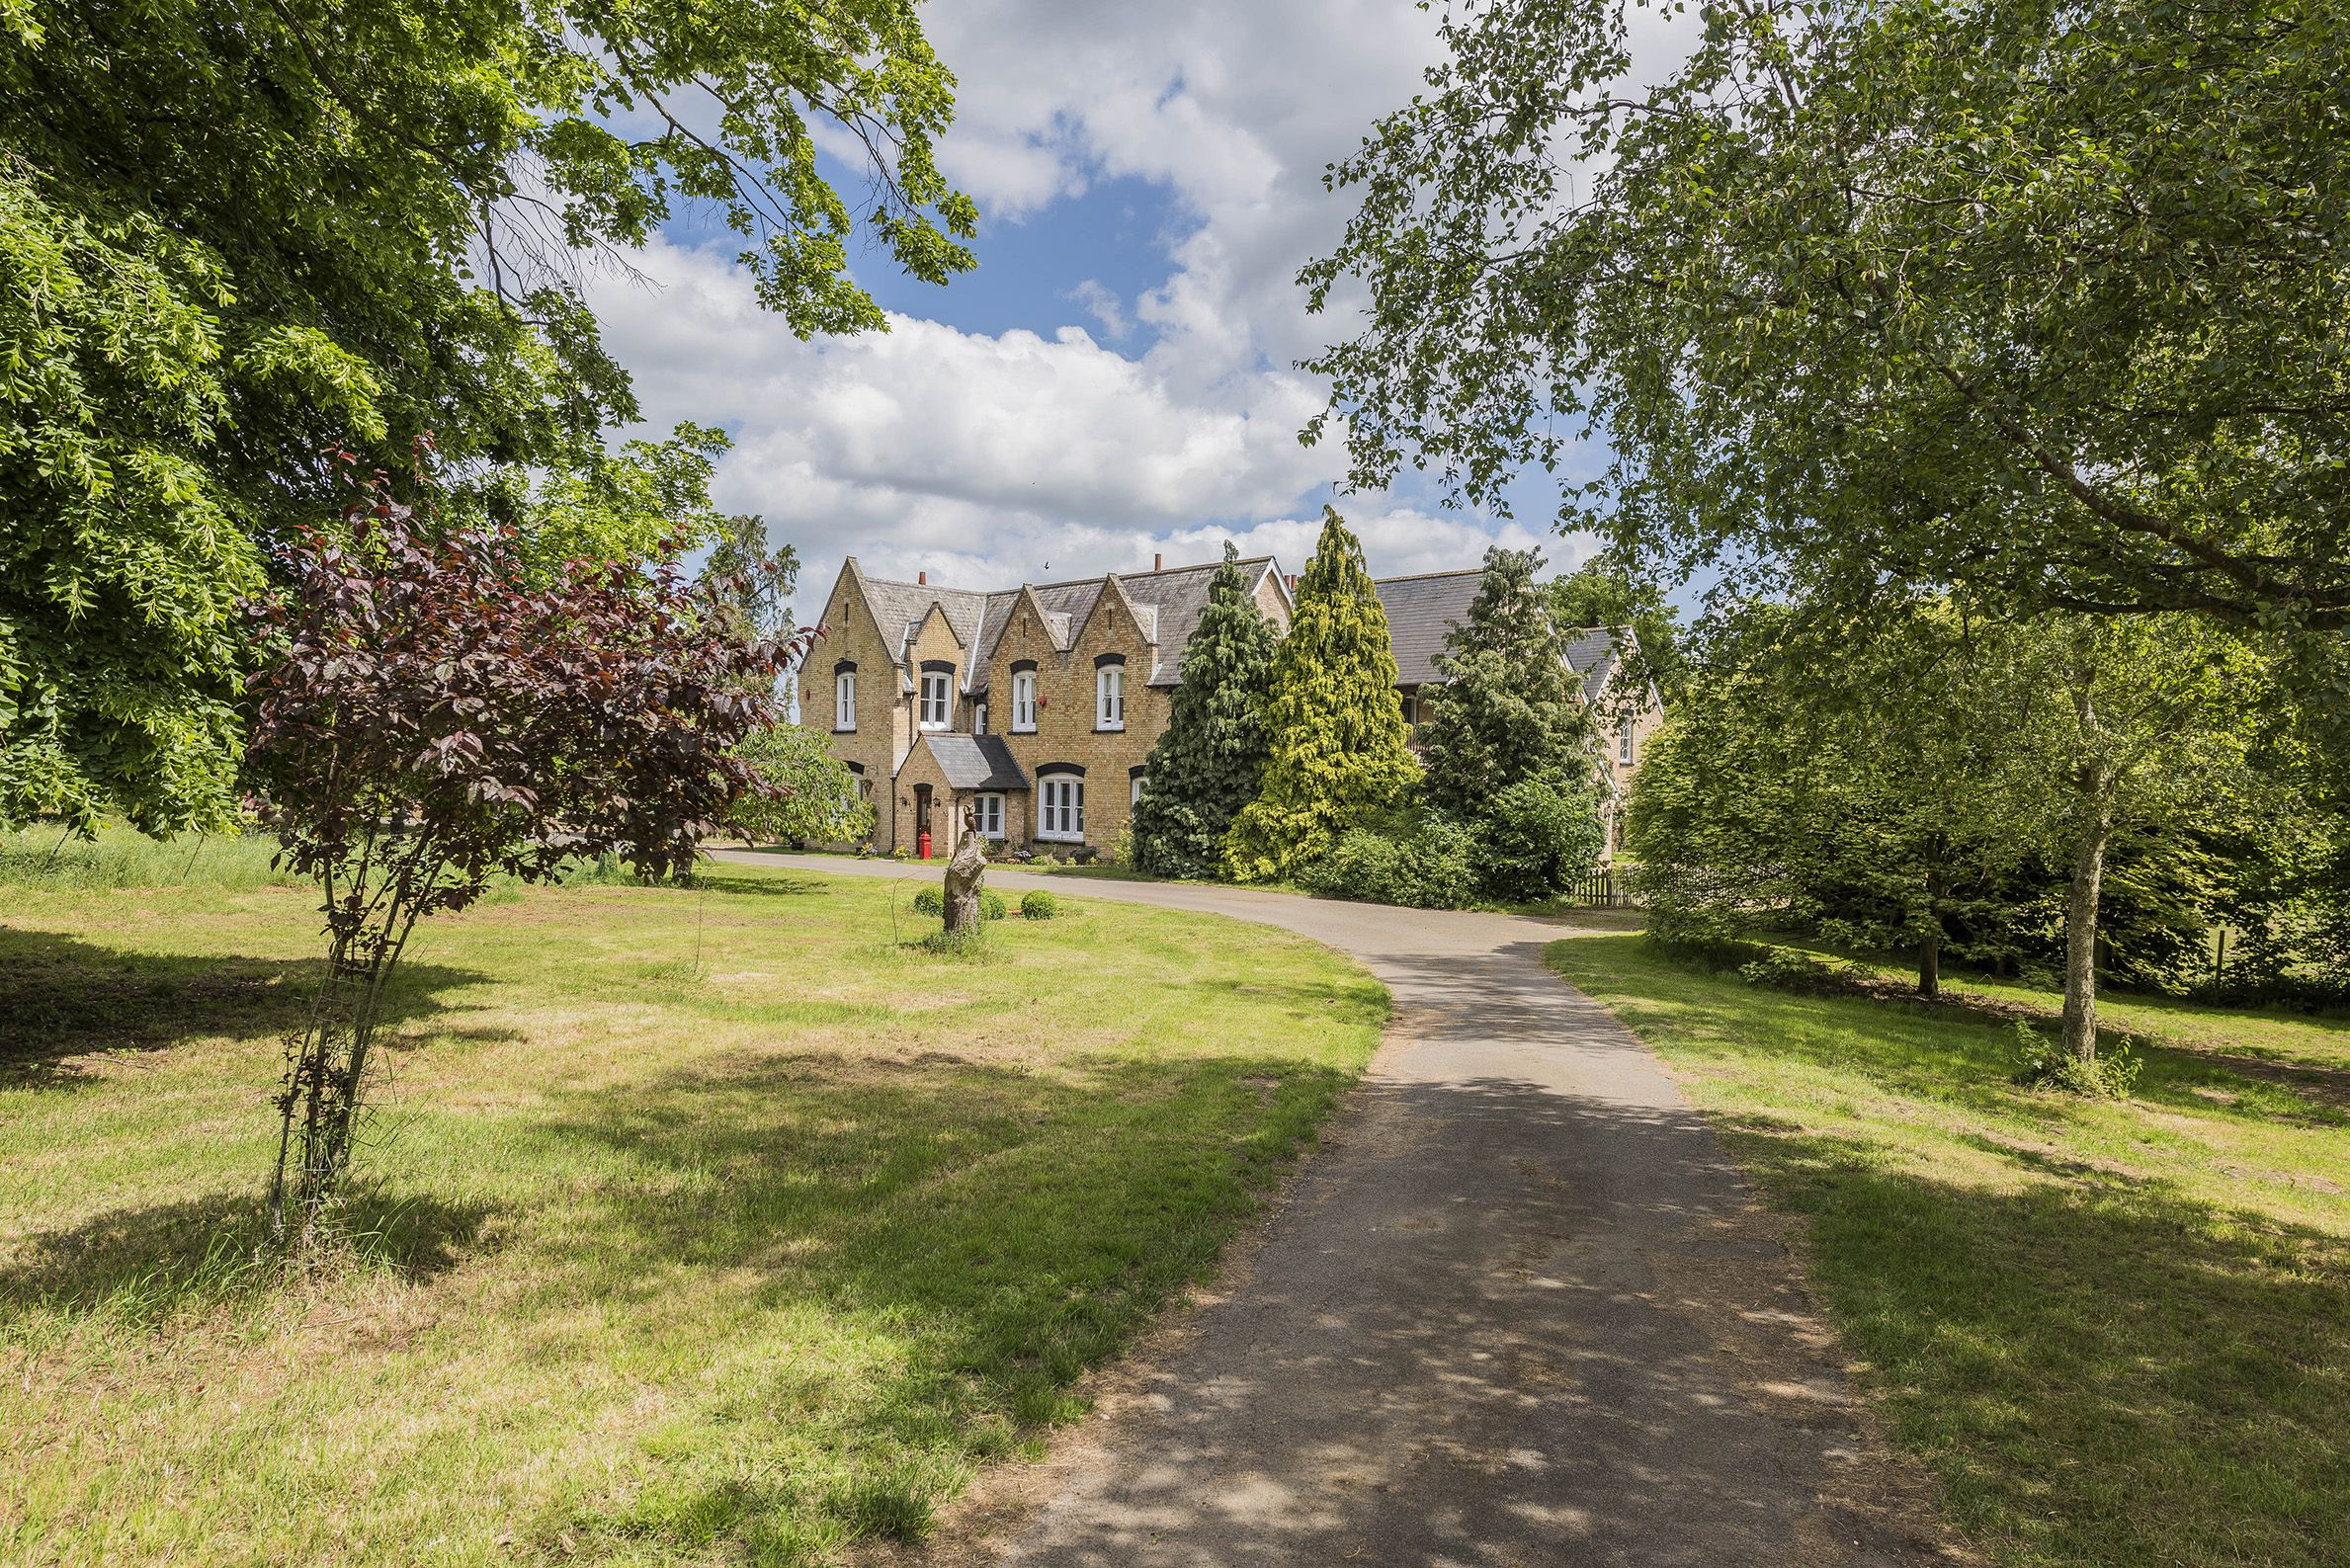 15th century period home in Bedfordshire visited byauthor J.M Barrie is up for sale